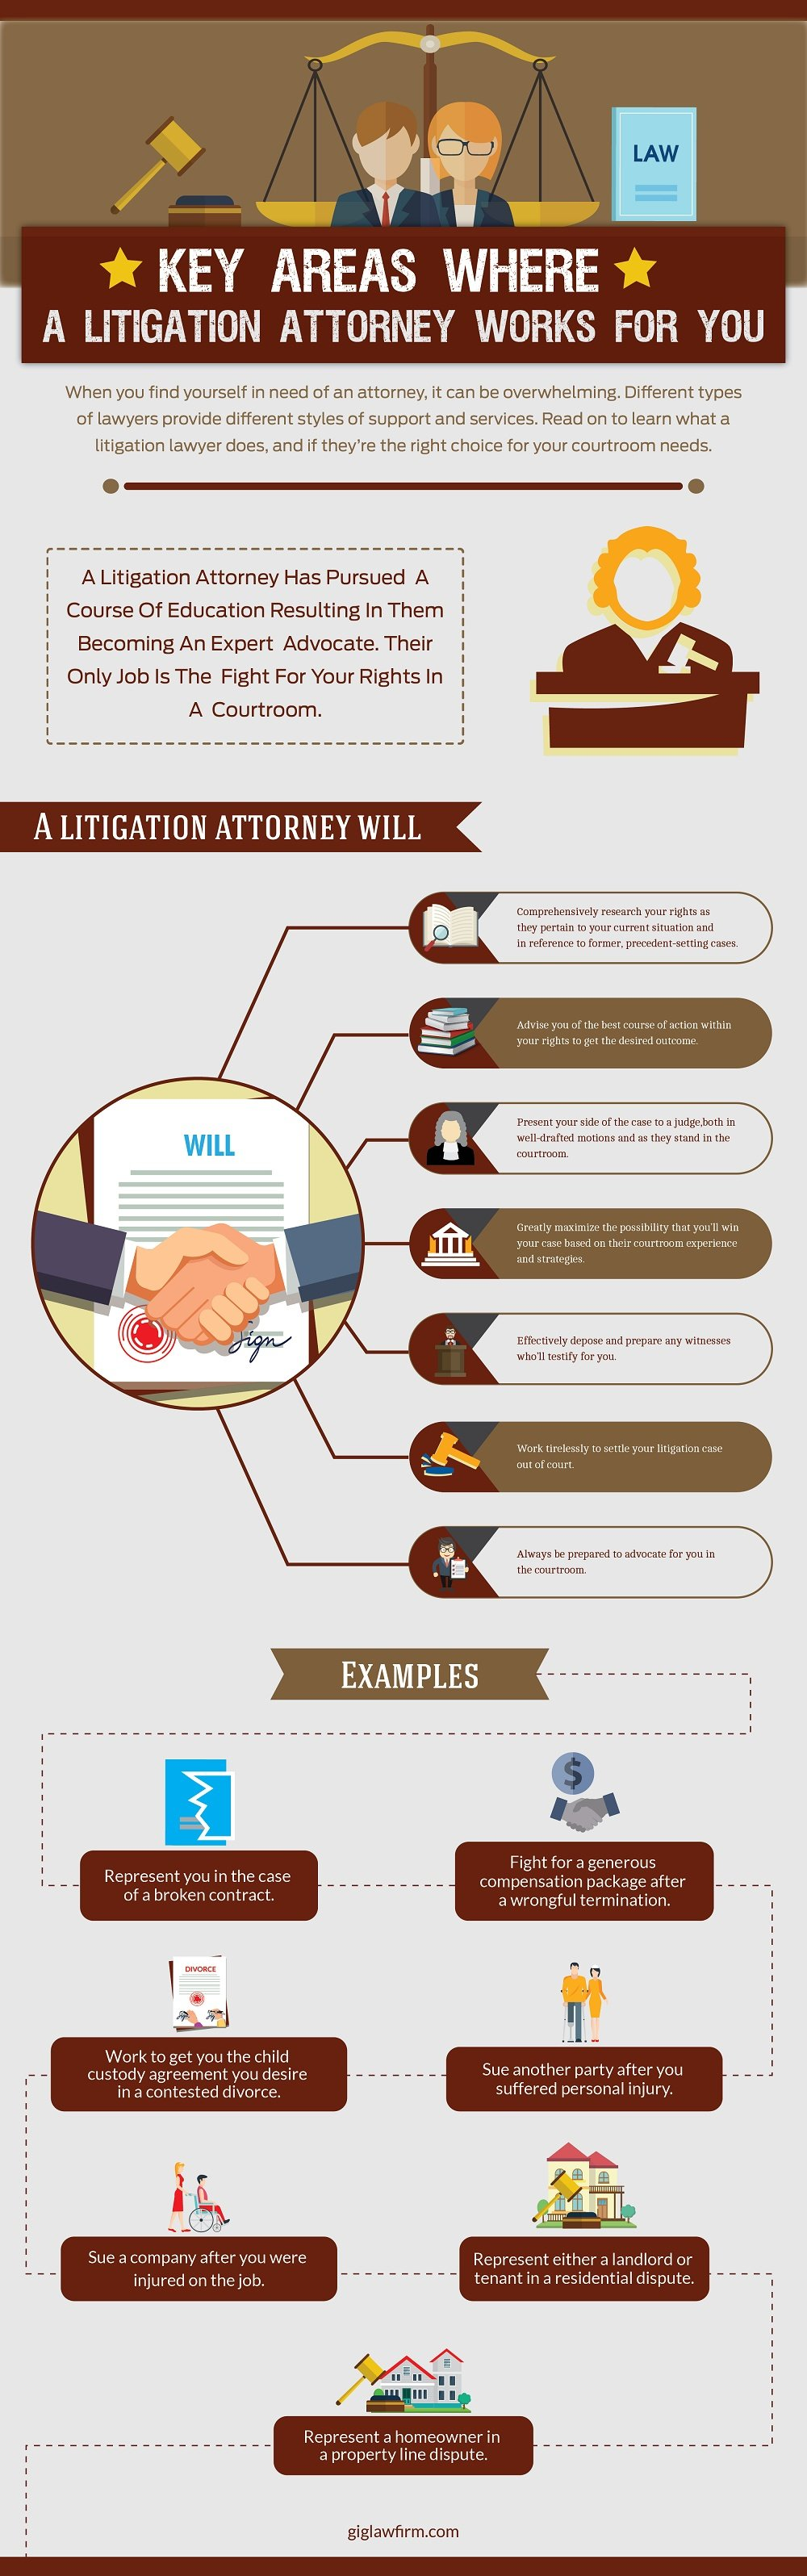 Key Areas Where a Litigation Attorney Works for You